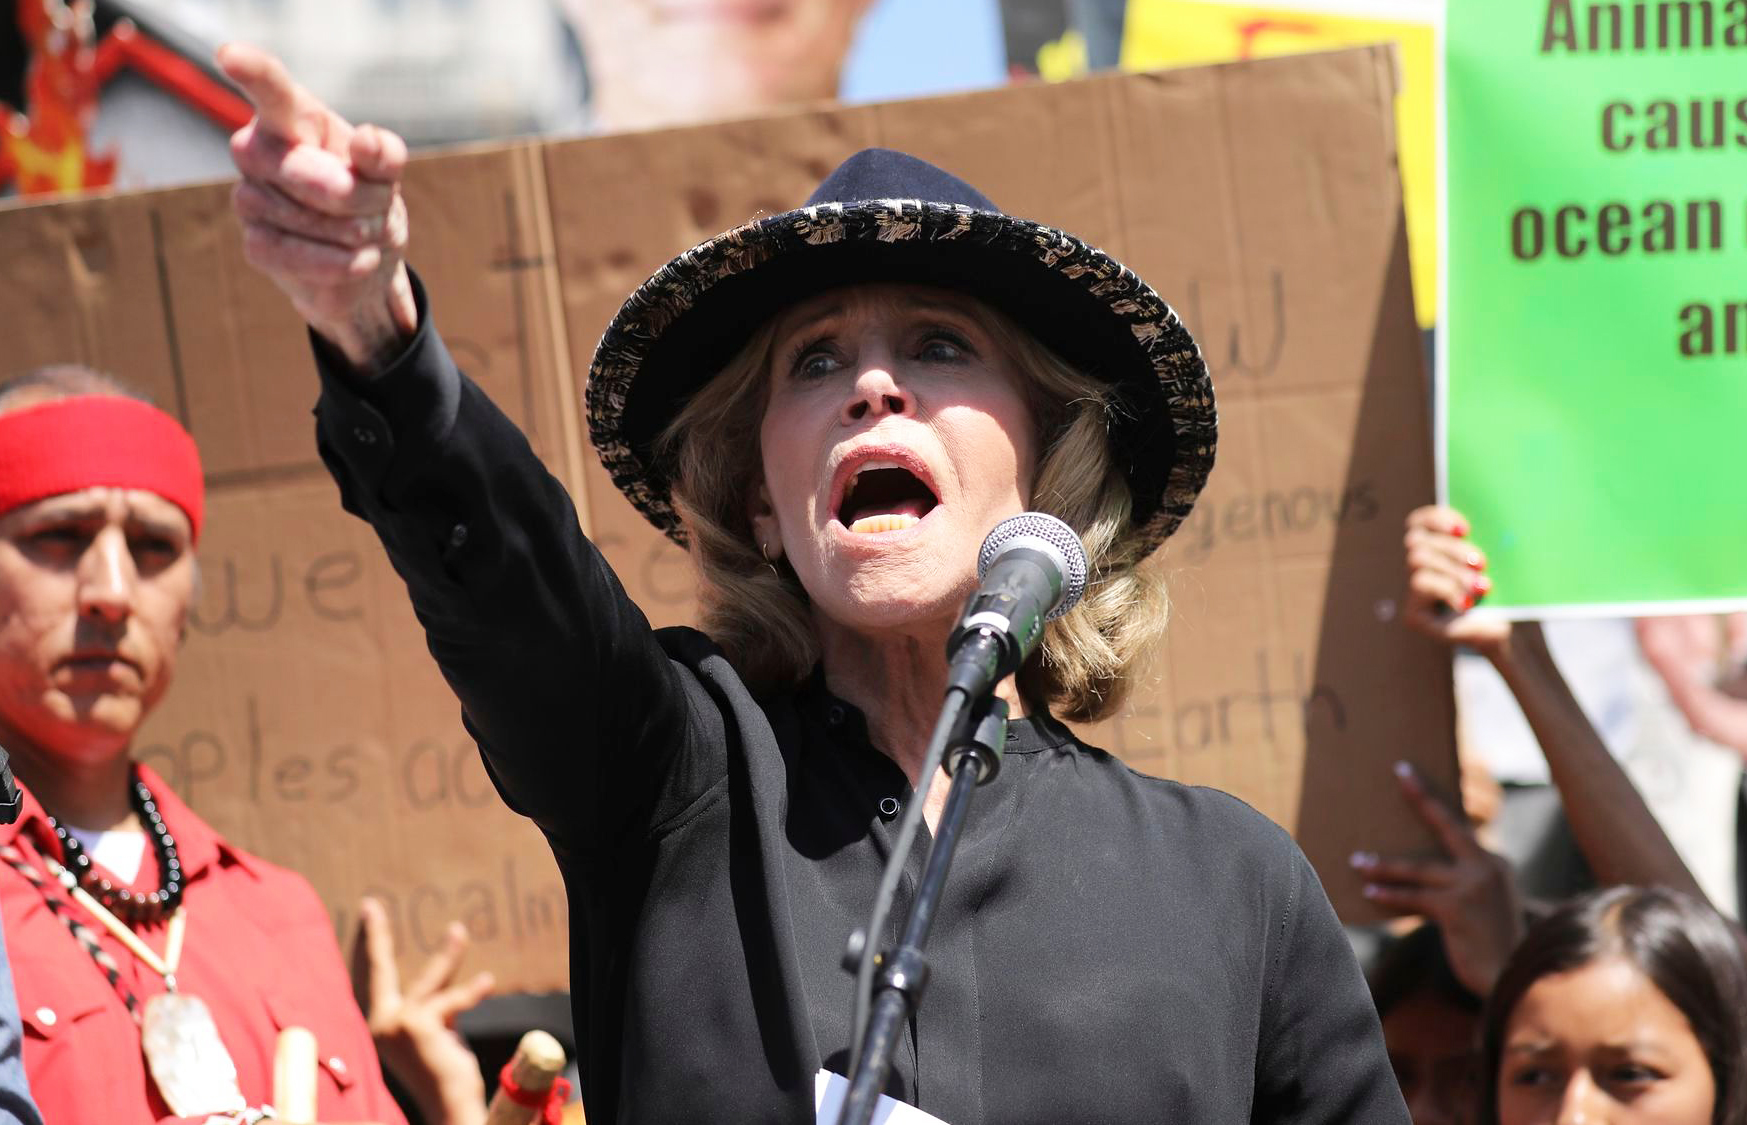 Jane Fonda Arrested at a Climate Change Rally Outside of the Capitol Building